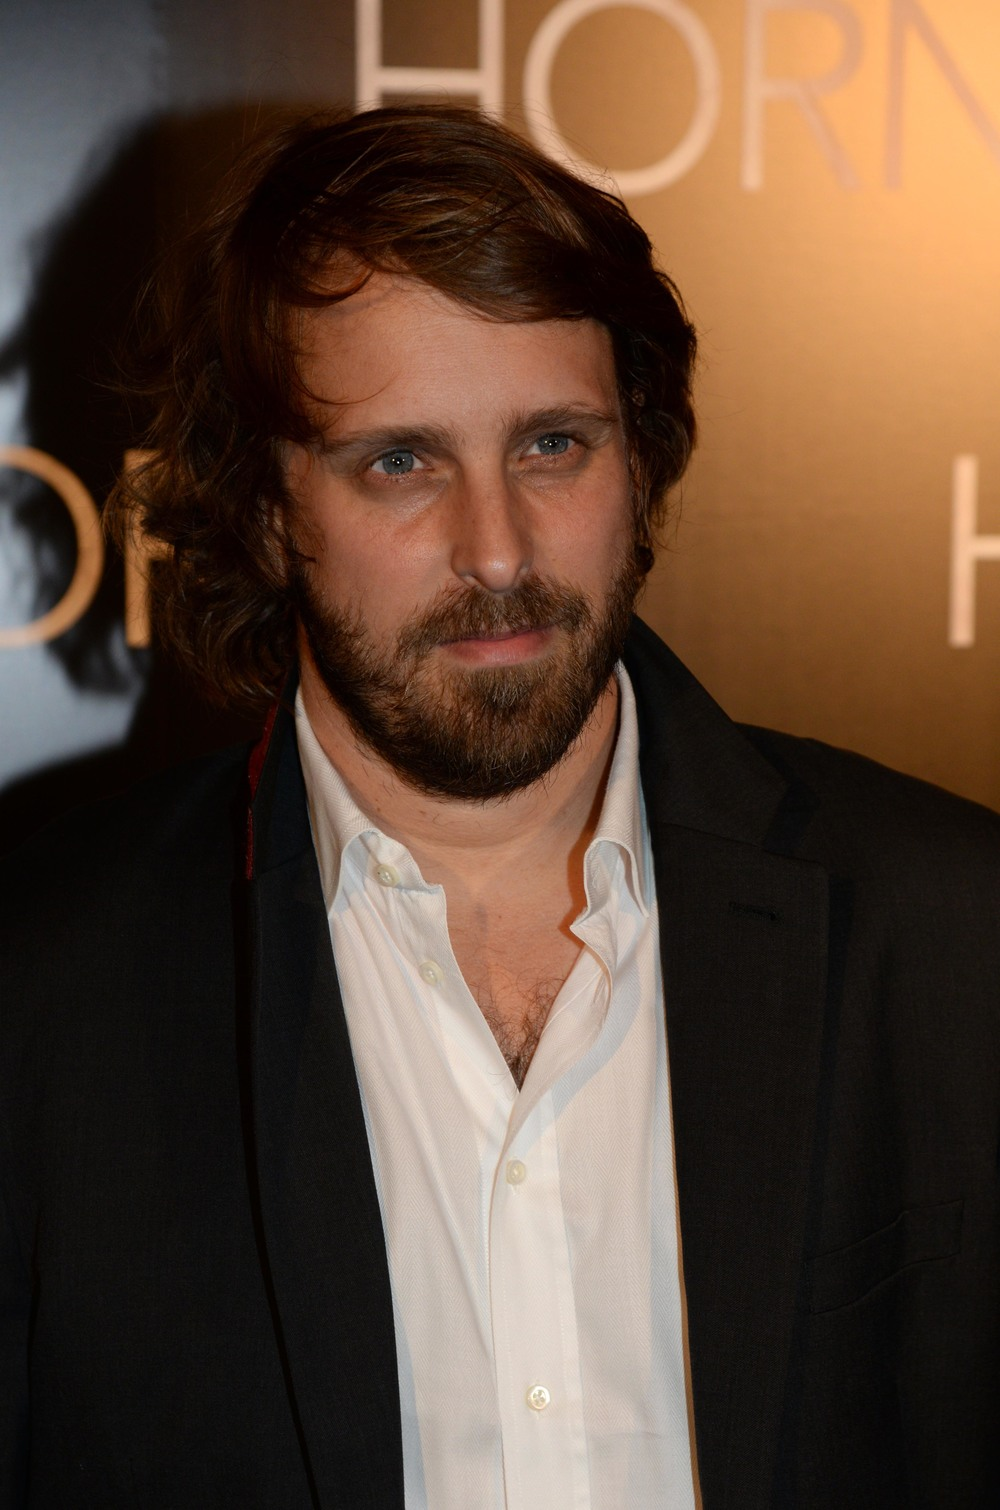 alexandre-aja-horns-movie-red-carpet-french-premiere.jpg